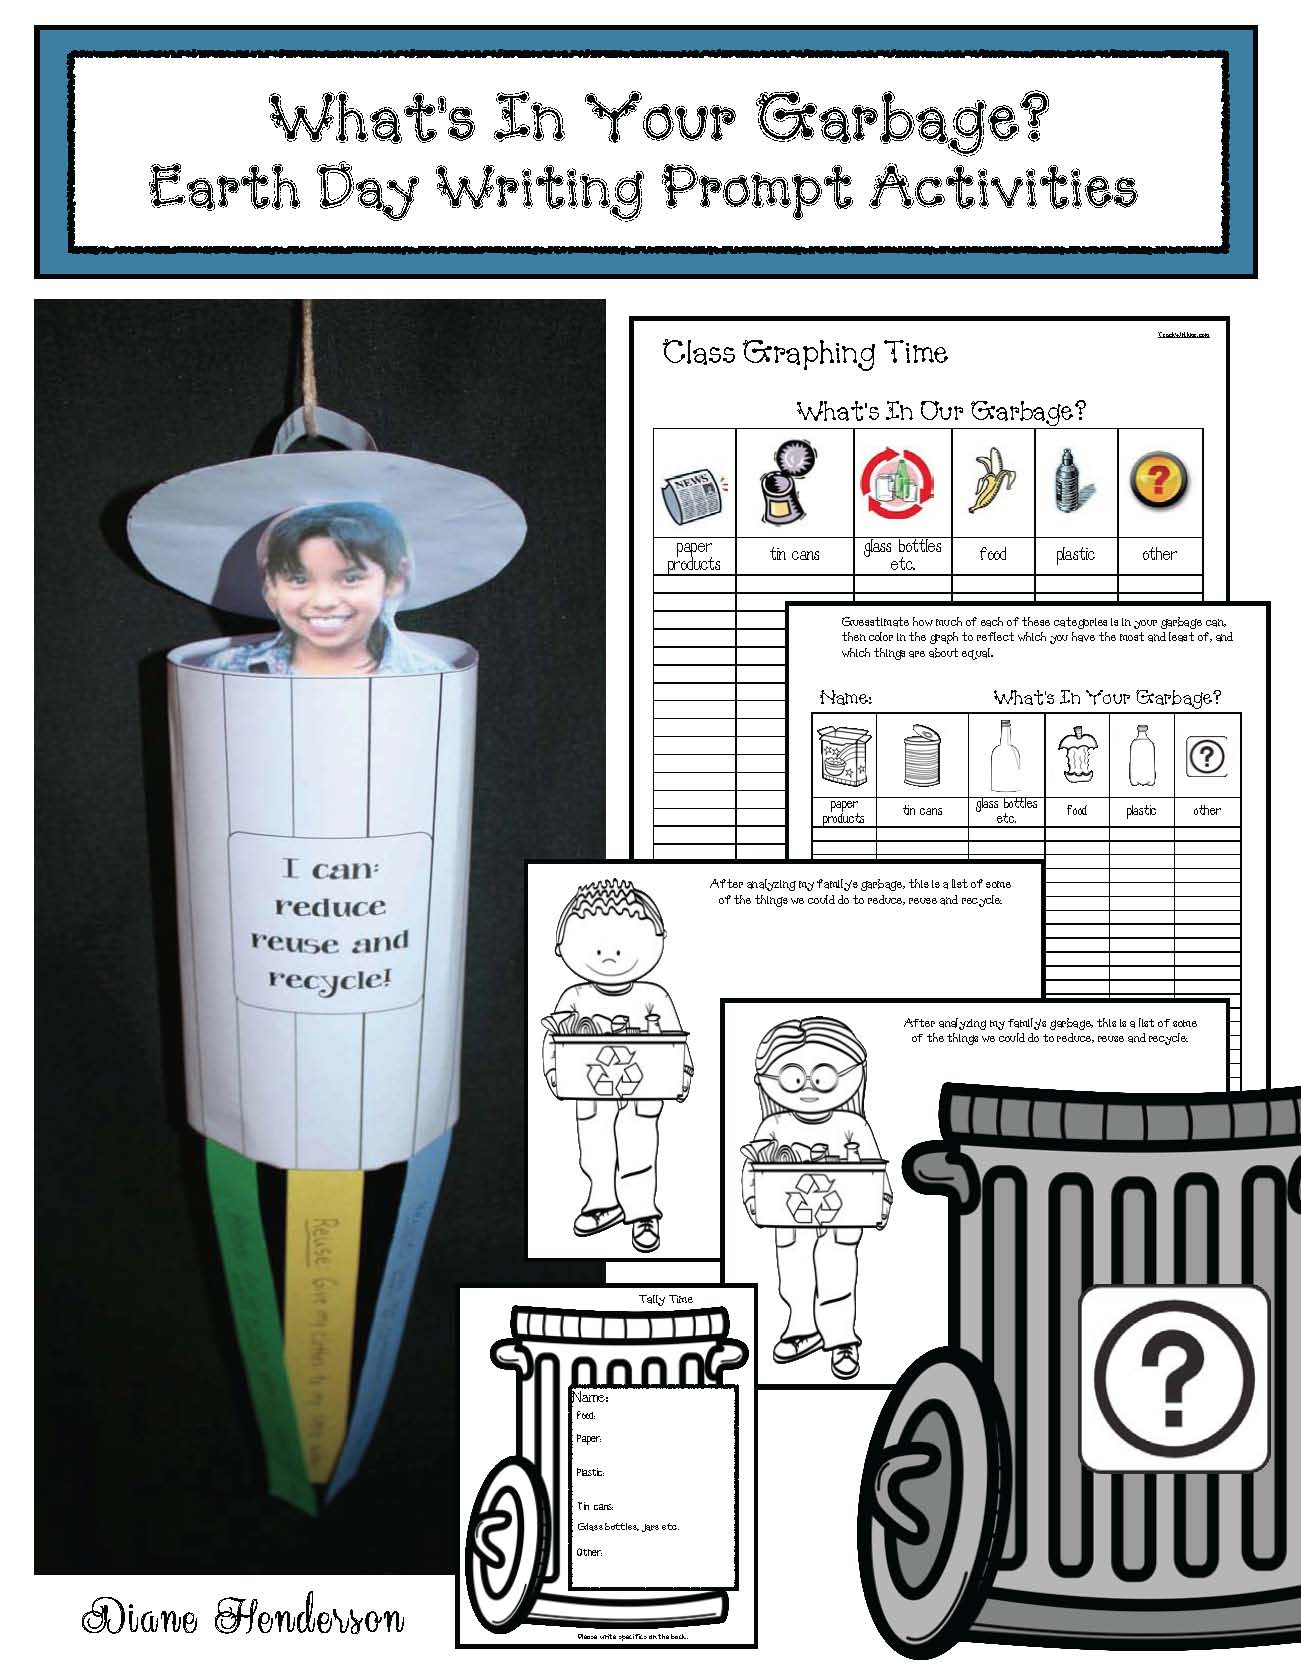 earth day crafts, earth day activities, earth day writing prompts, earth day bulletin board ideas, earth day bookmarks, cylinder shape crafts, cylinder shape activities, free earth day, environmental footprint activities